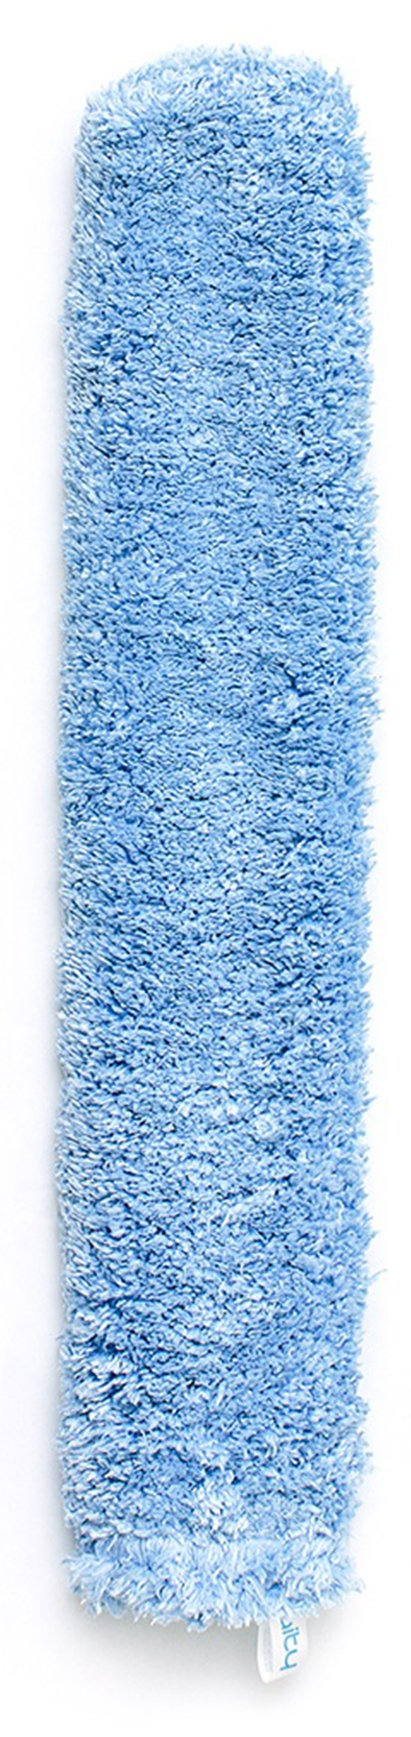 Professional Microfiber Duster For Cleaning By Praity – Duster With Extension Pole – High Reach – Eco-Friendly & Machine Washable – Ideal For Ceilings, Ceiling Fans, TVs & Bookcases (Replacement Head)